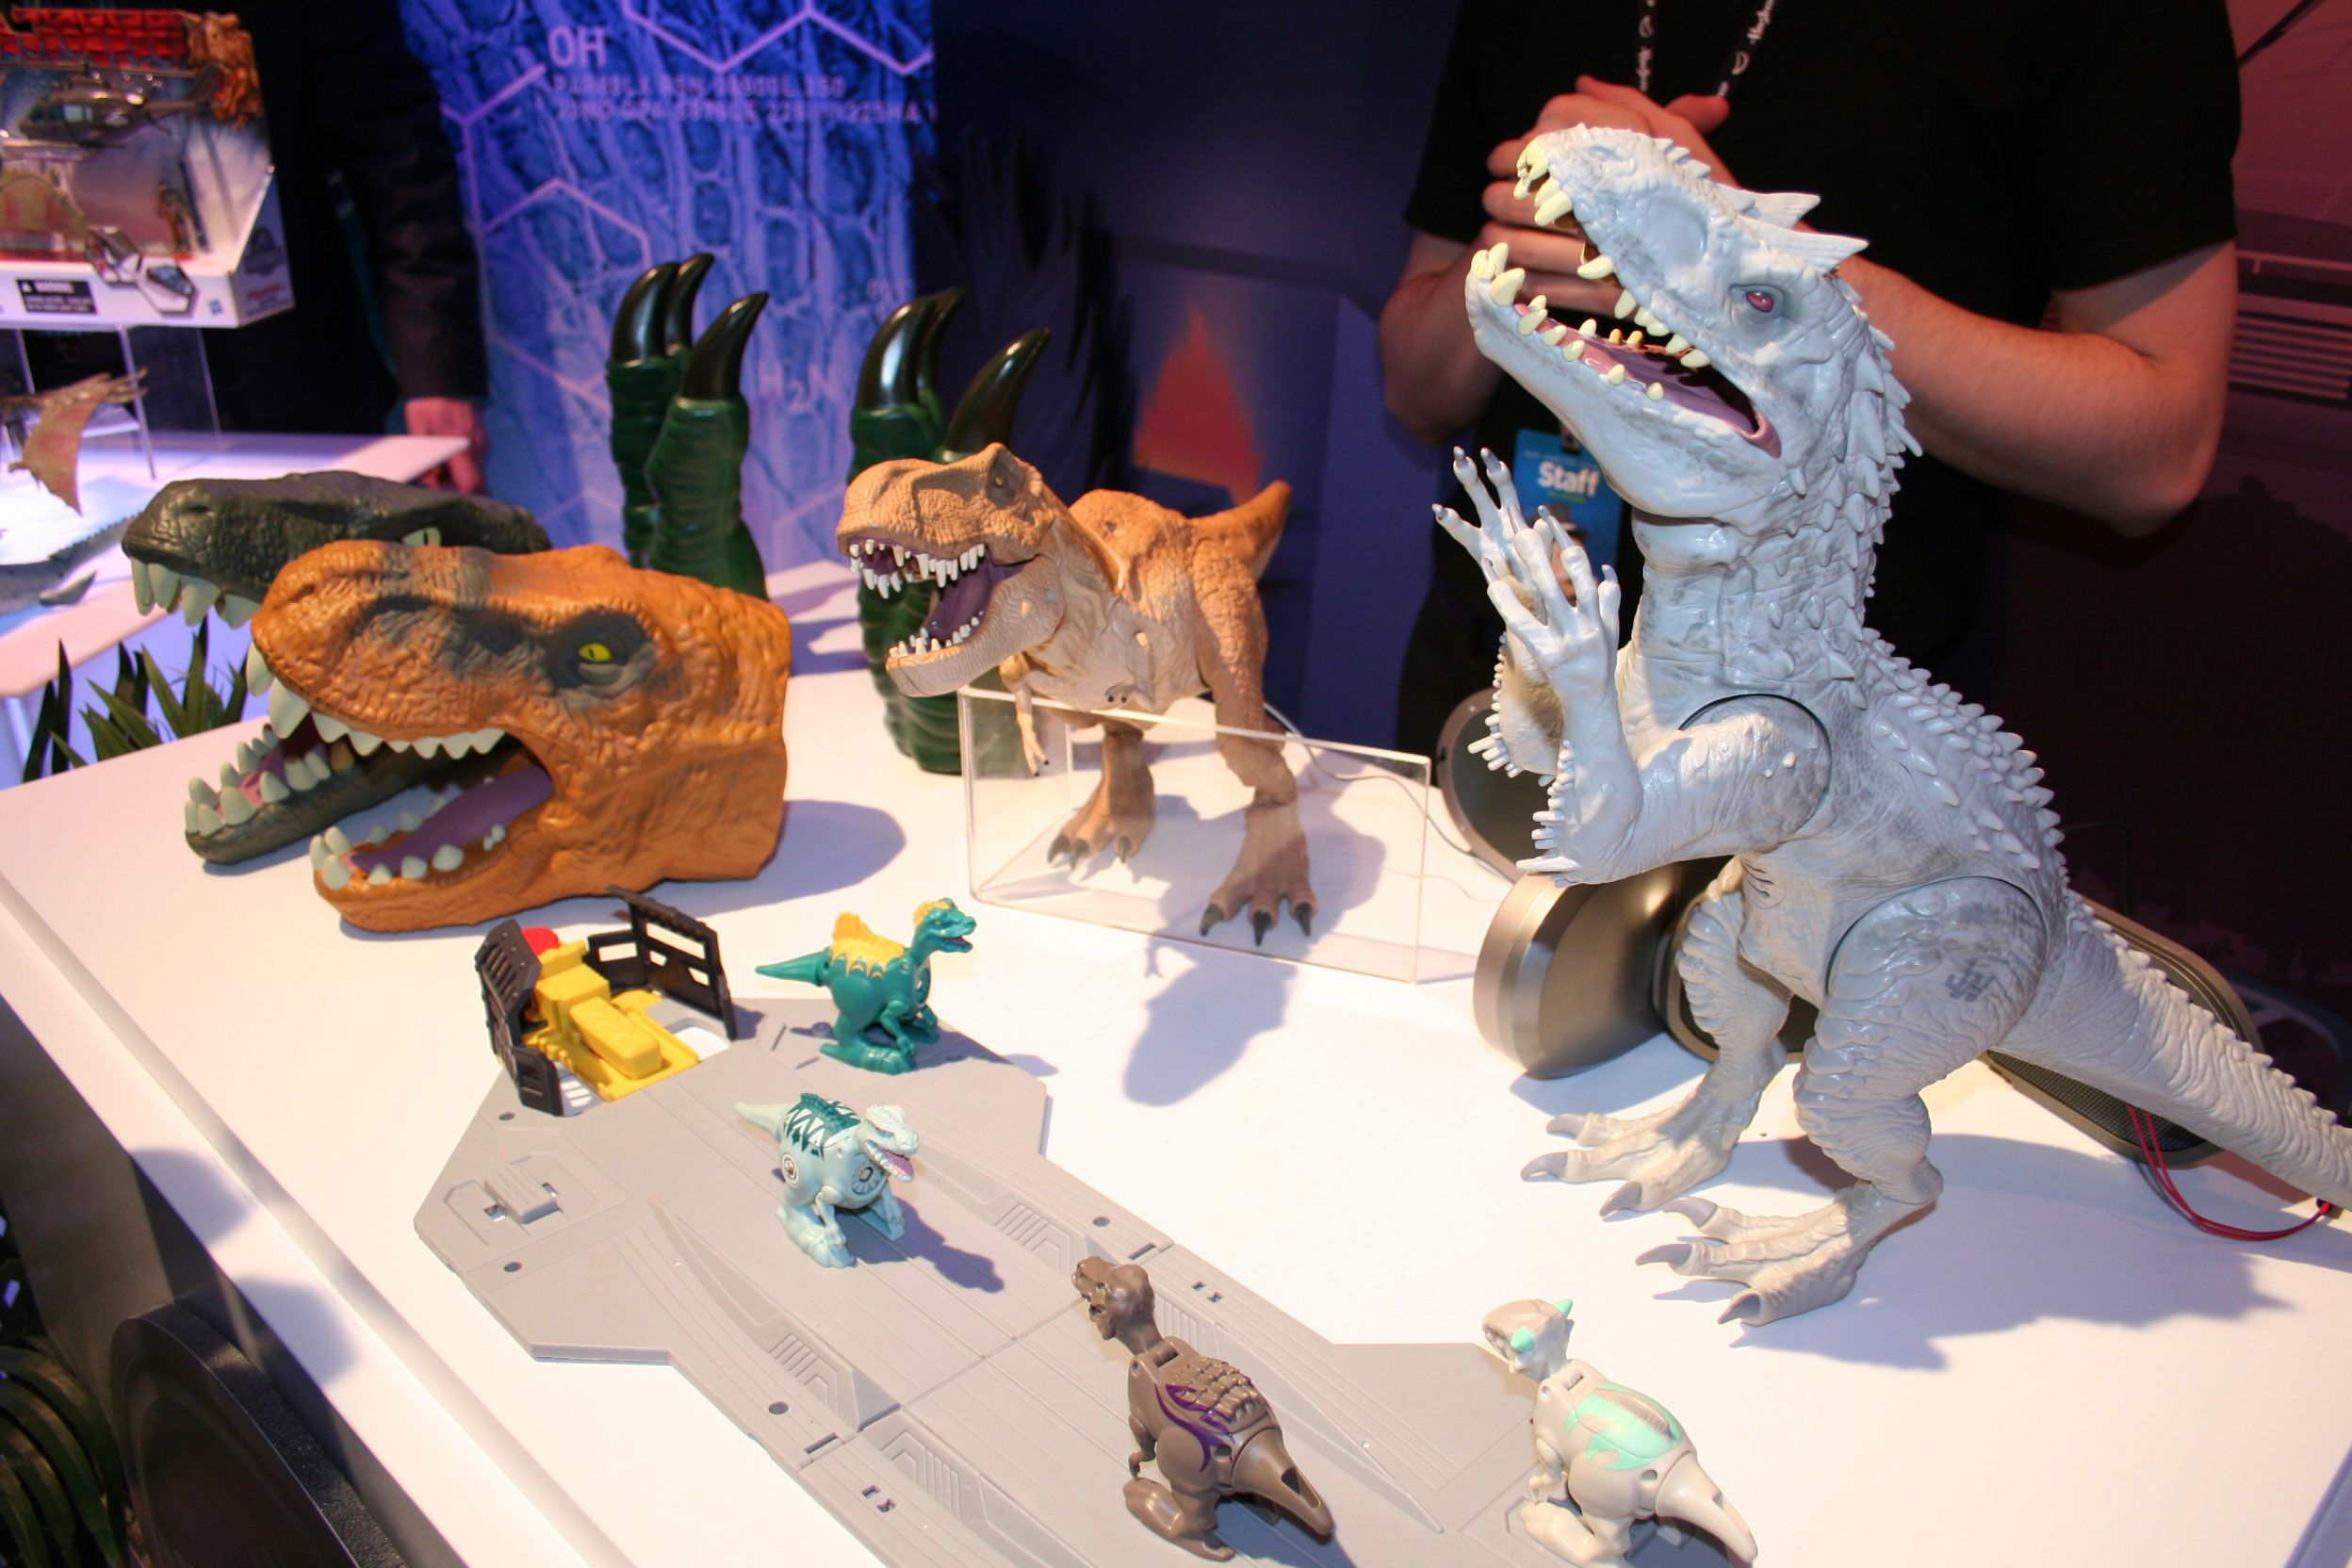 Toys From Hasbro : Jurassic world toy images from hasbro at fair